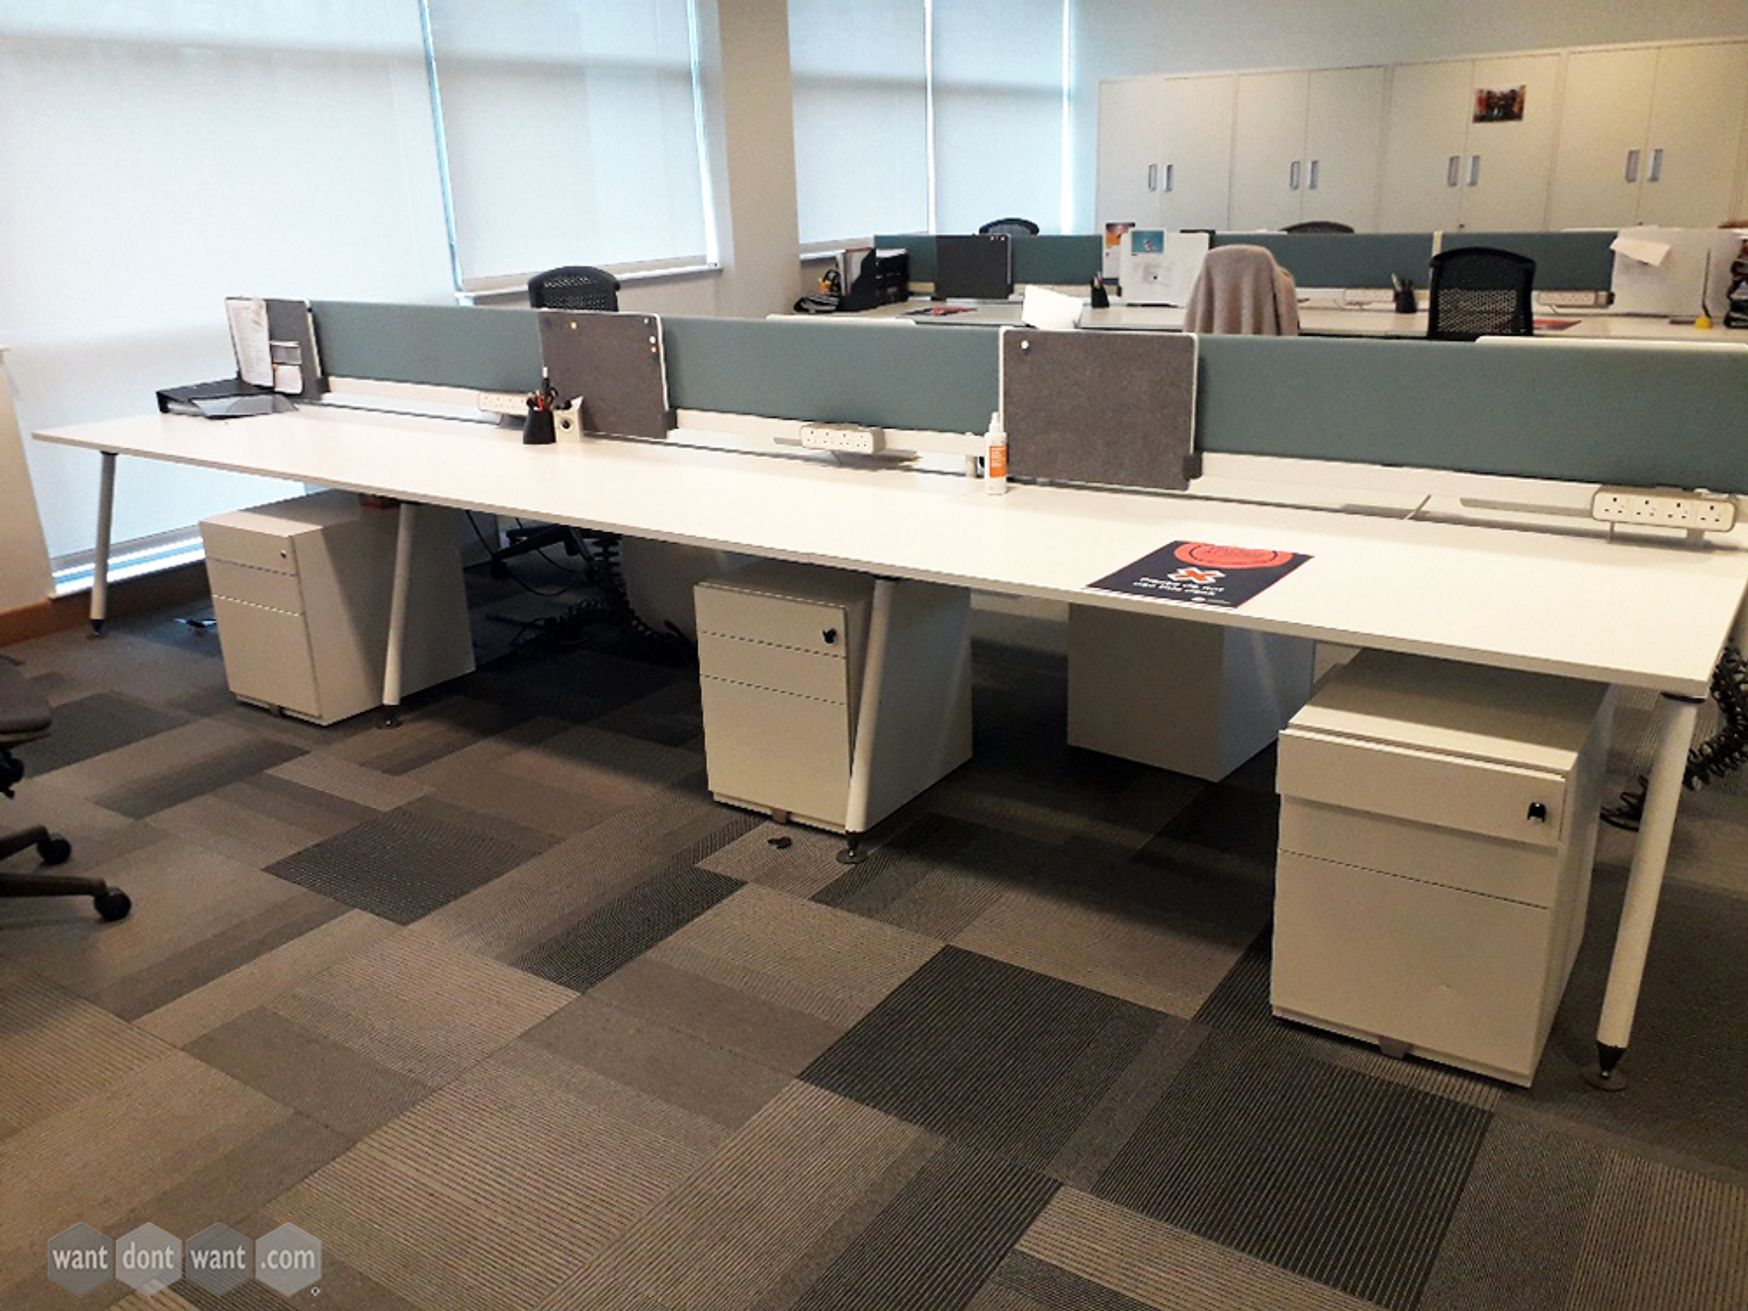 Used 1600mm Herman Miller Sense Bench Desks in White with Screens